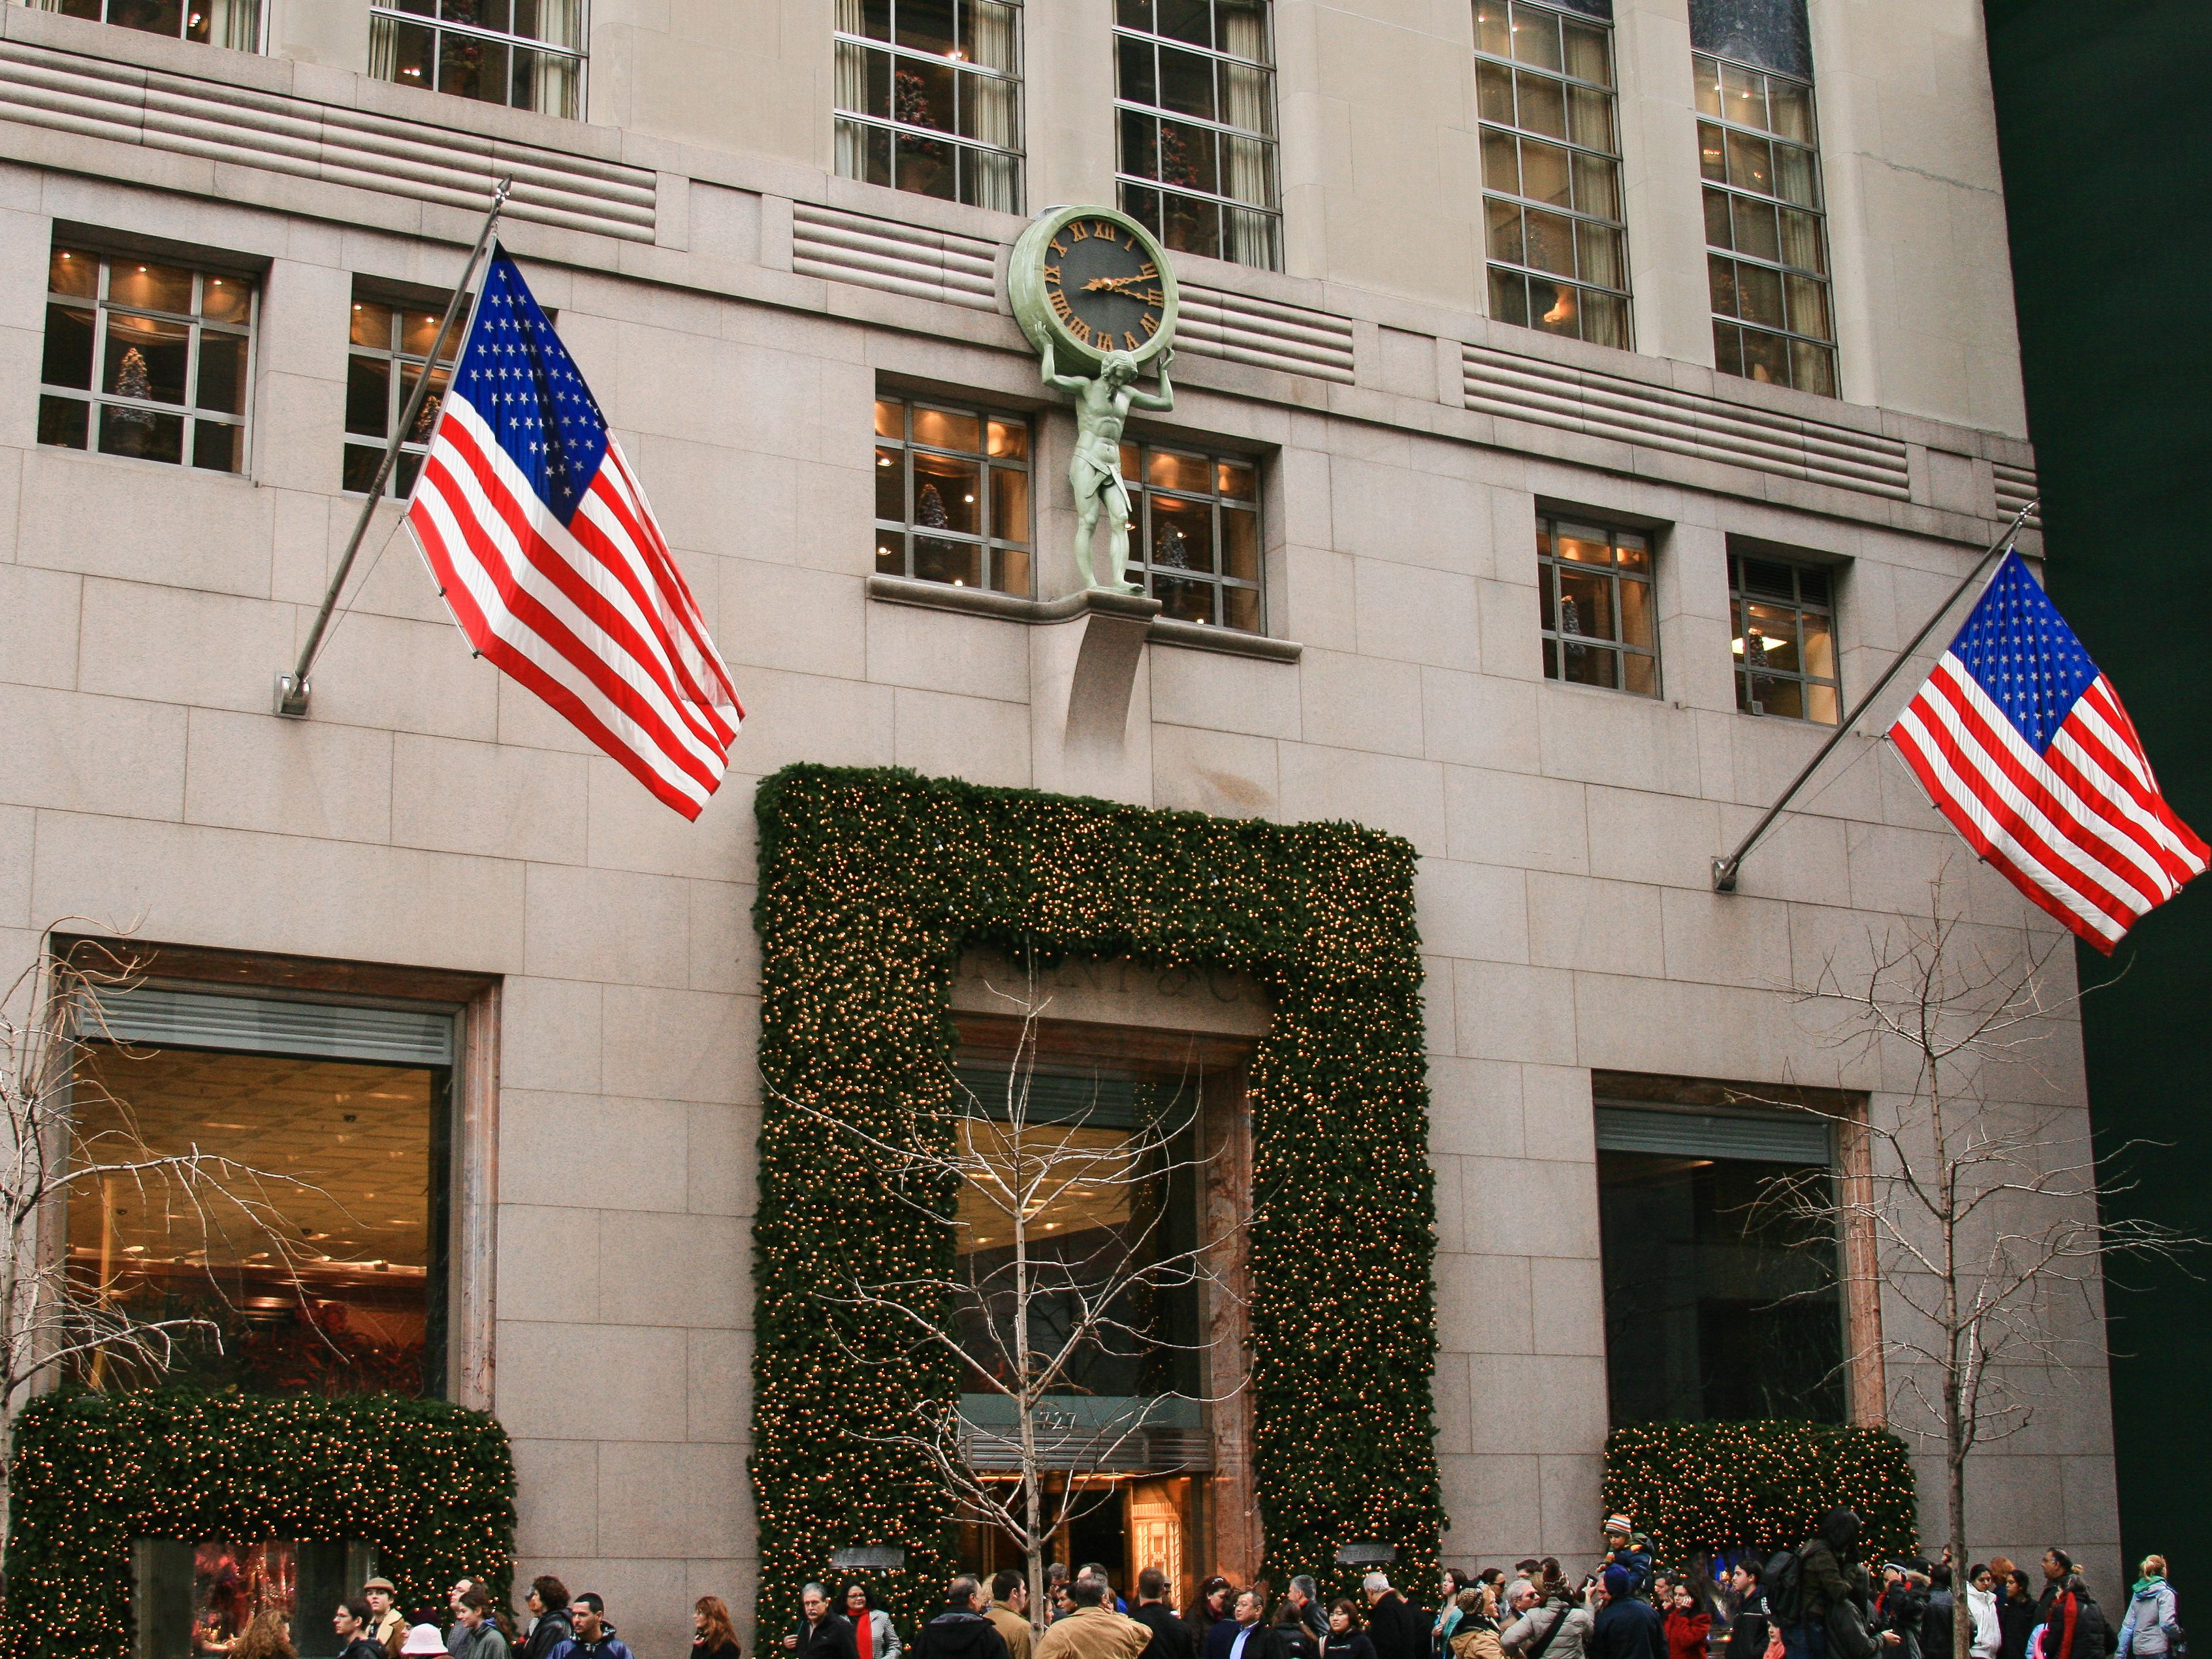 Tiffany & Co 5th Avenue Store at Christmas, New York.